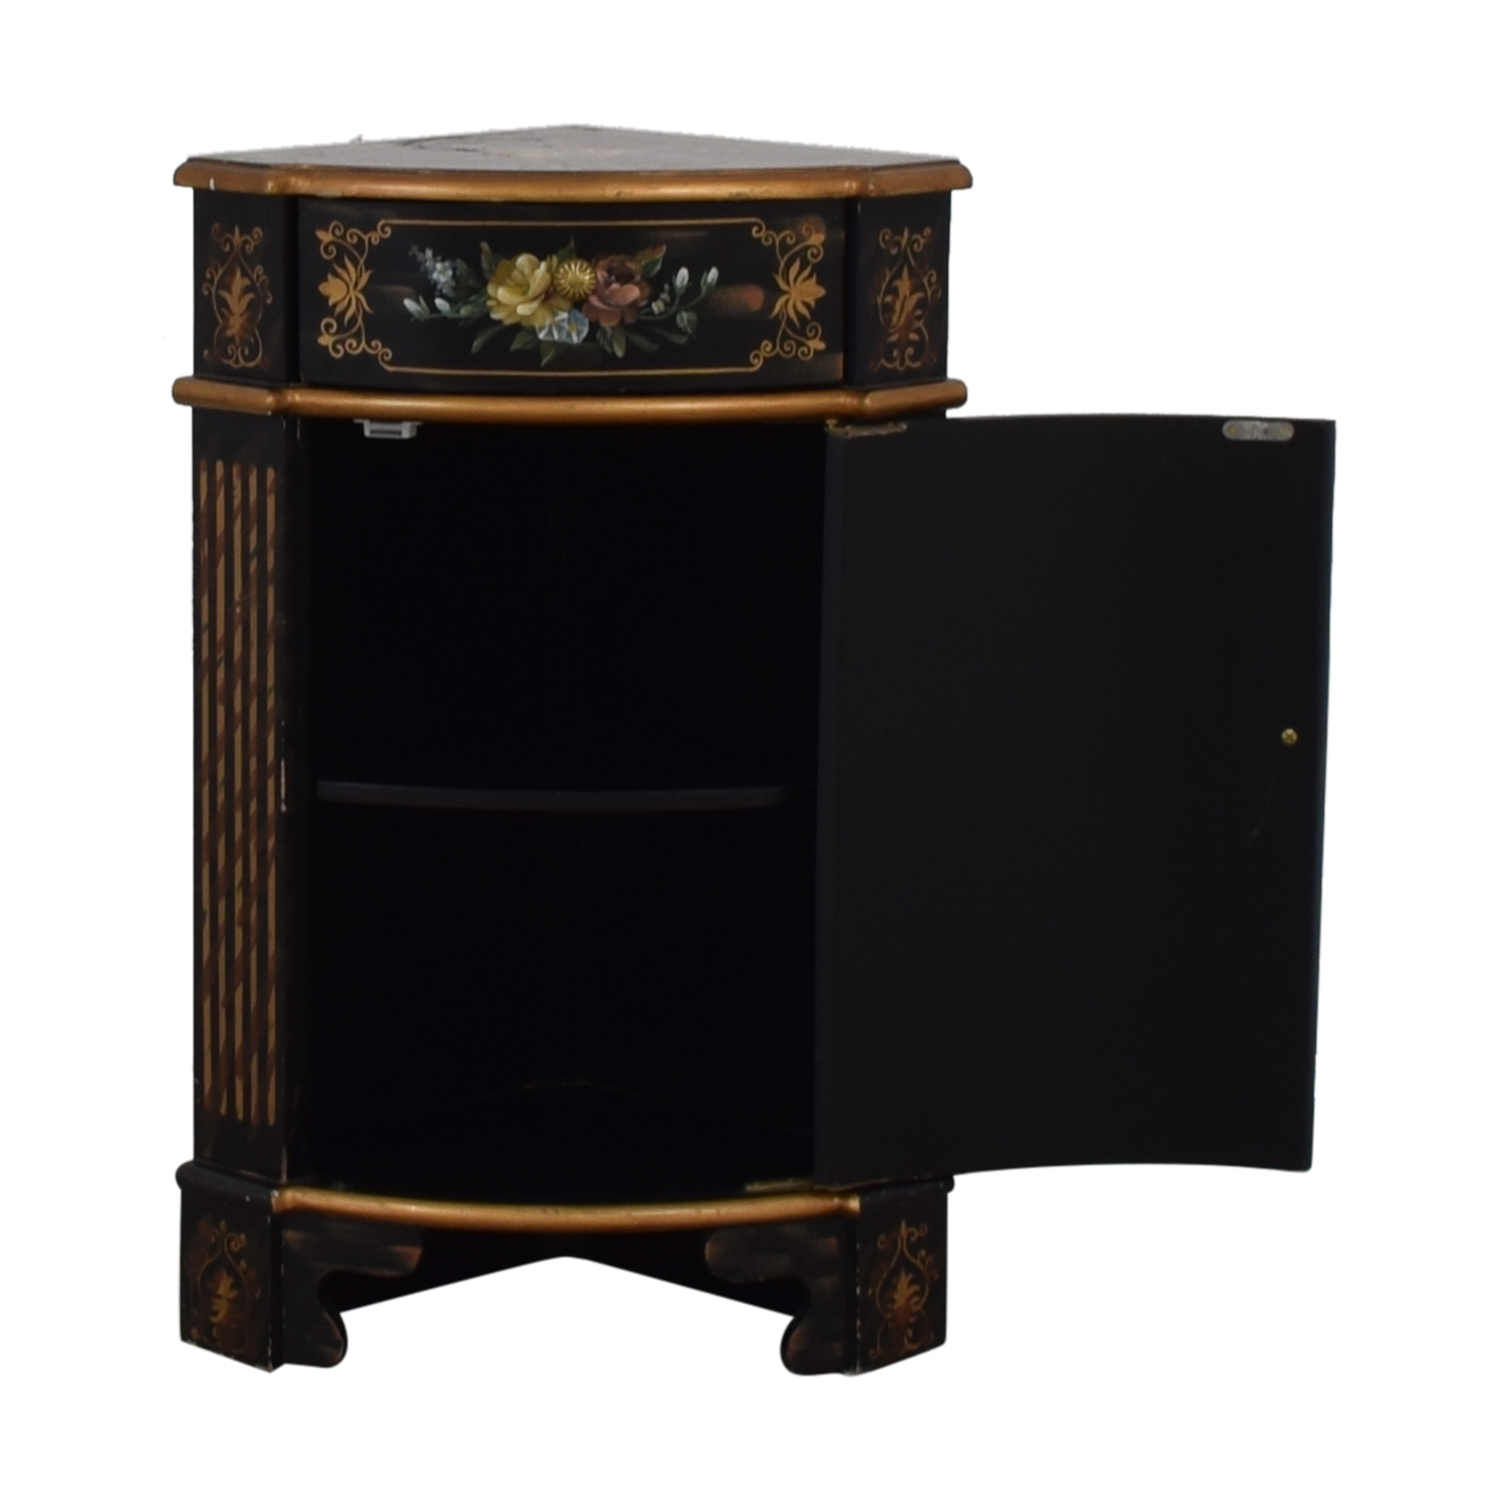 Antique Black Hand-Painted Single Drawer Corner Cabinet black